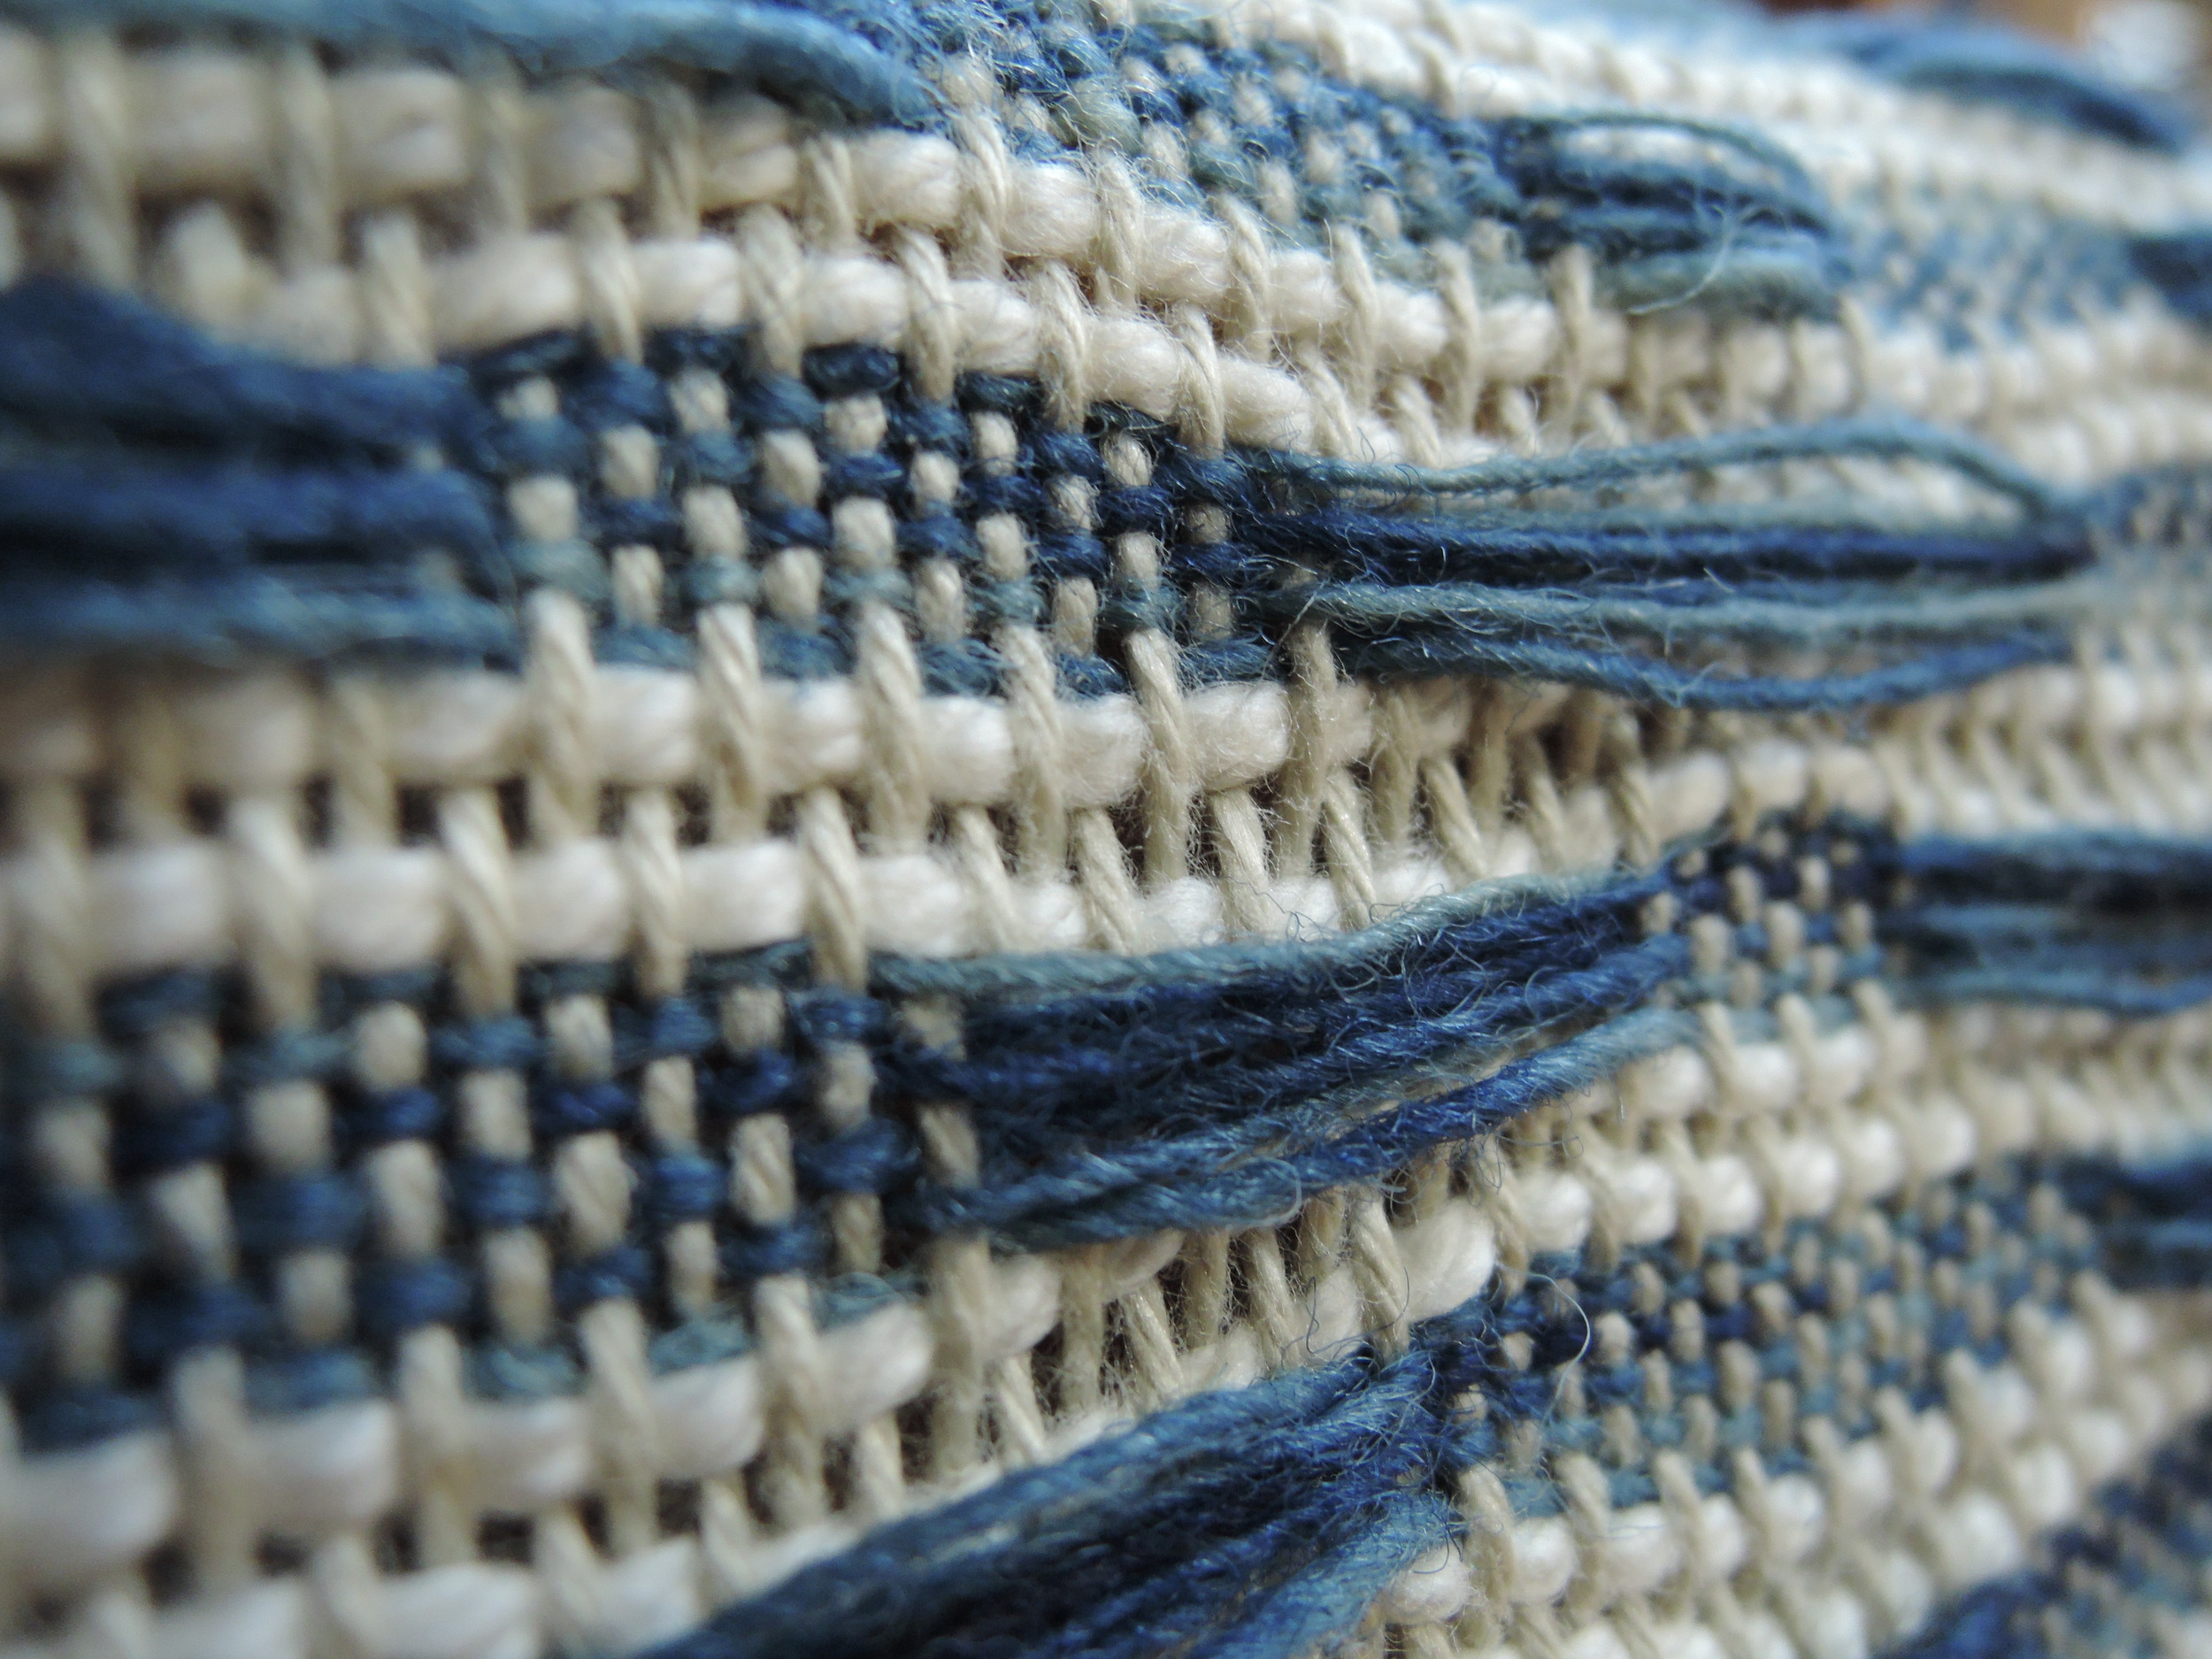 The back of the weaving is quite beautiful too.